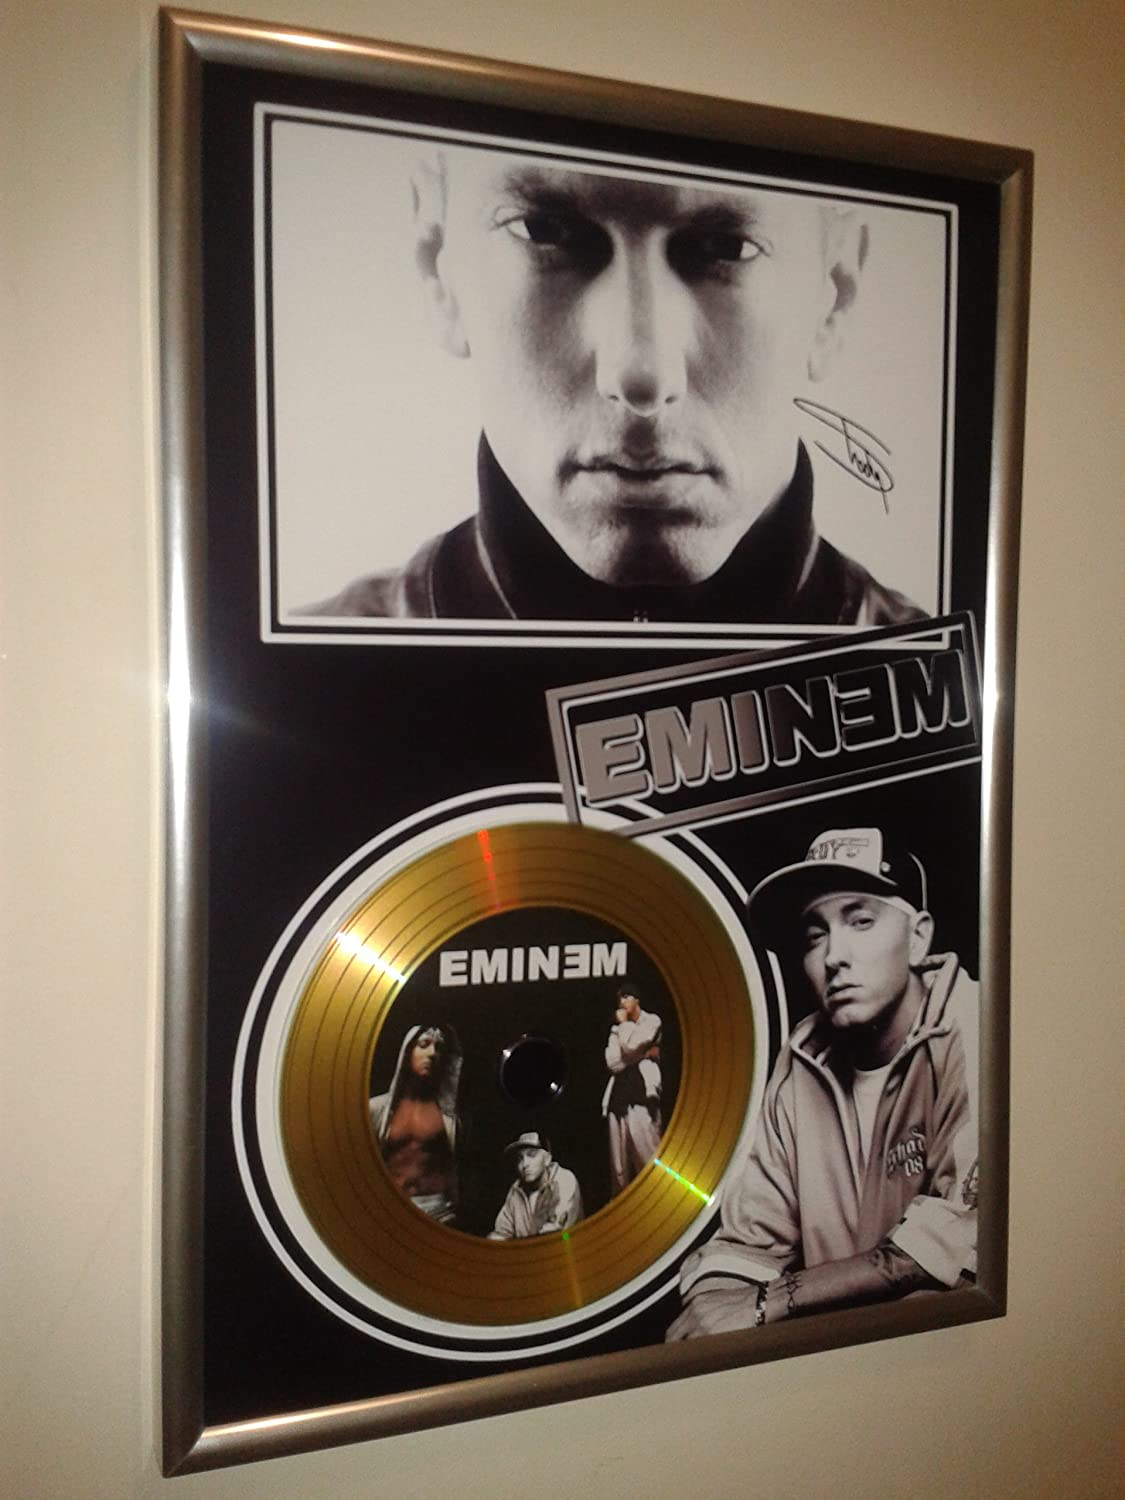 HWC Trading Eminem Signed A4 Printed Autograph Slim Shady Print Photo Picture Display